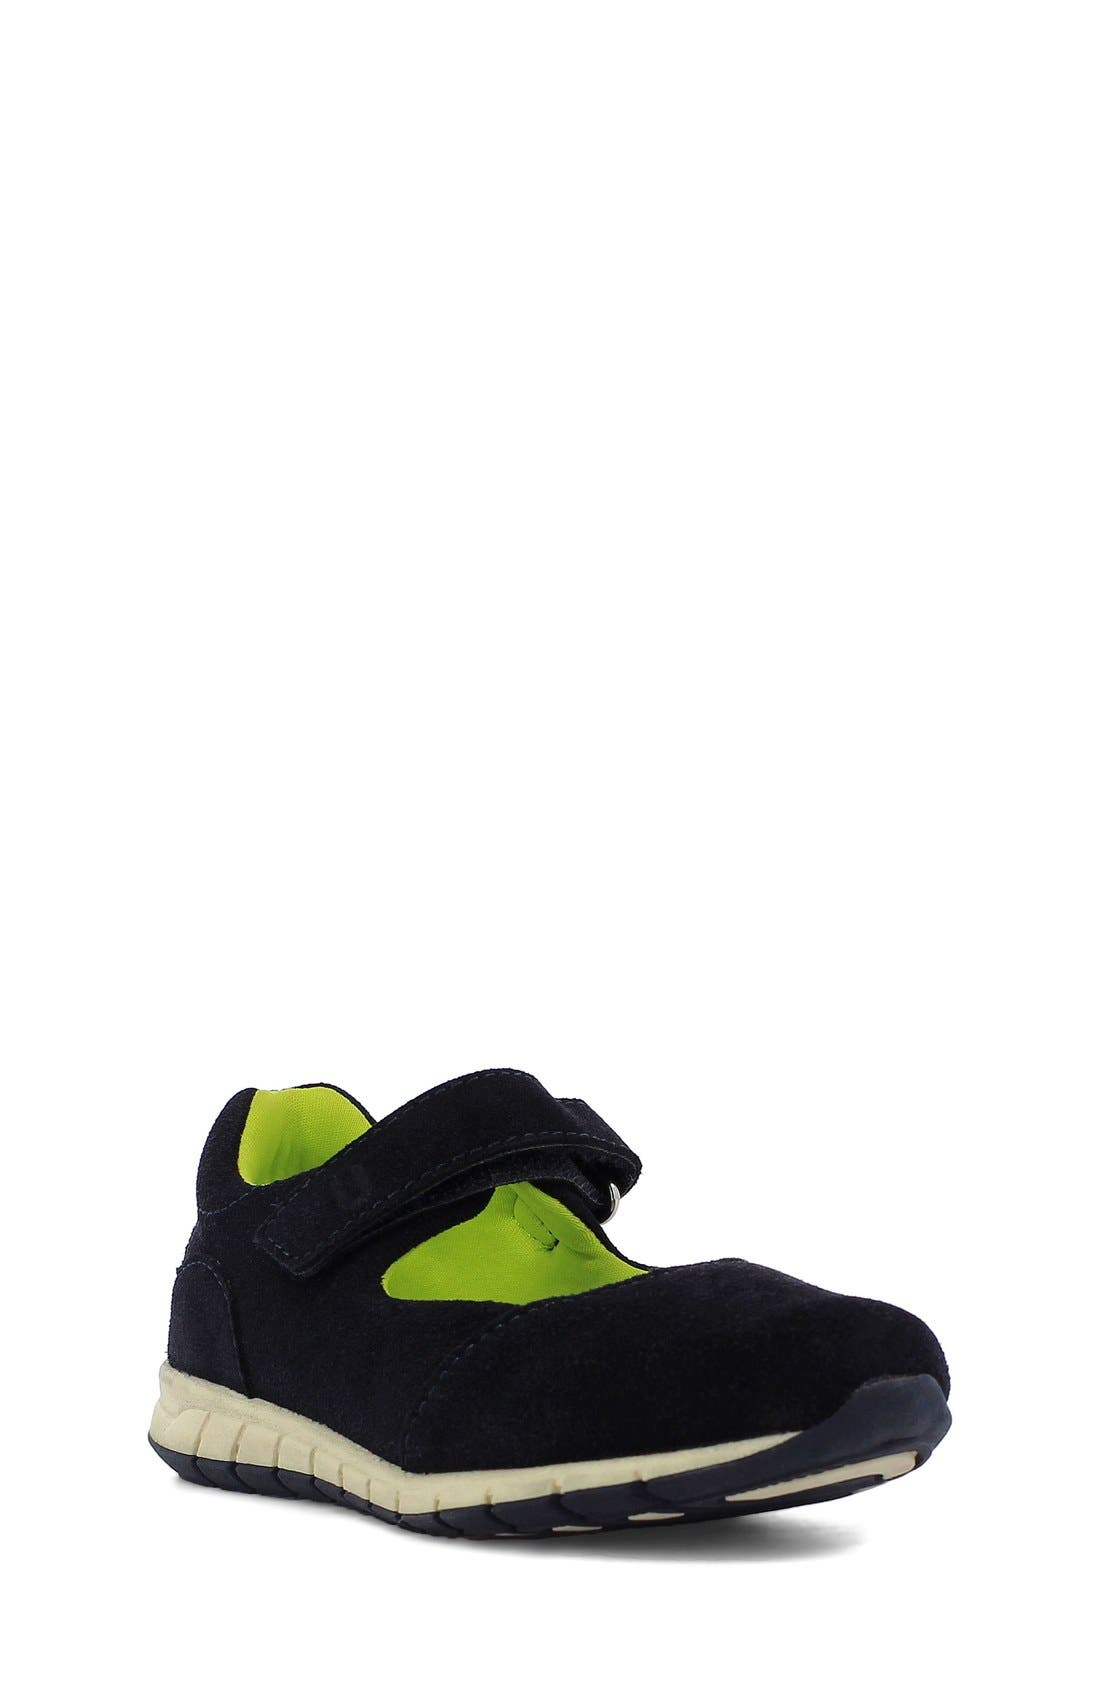 Umi Chelsea Mary Jane Sneaker Toddler Little